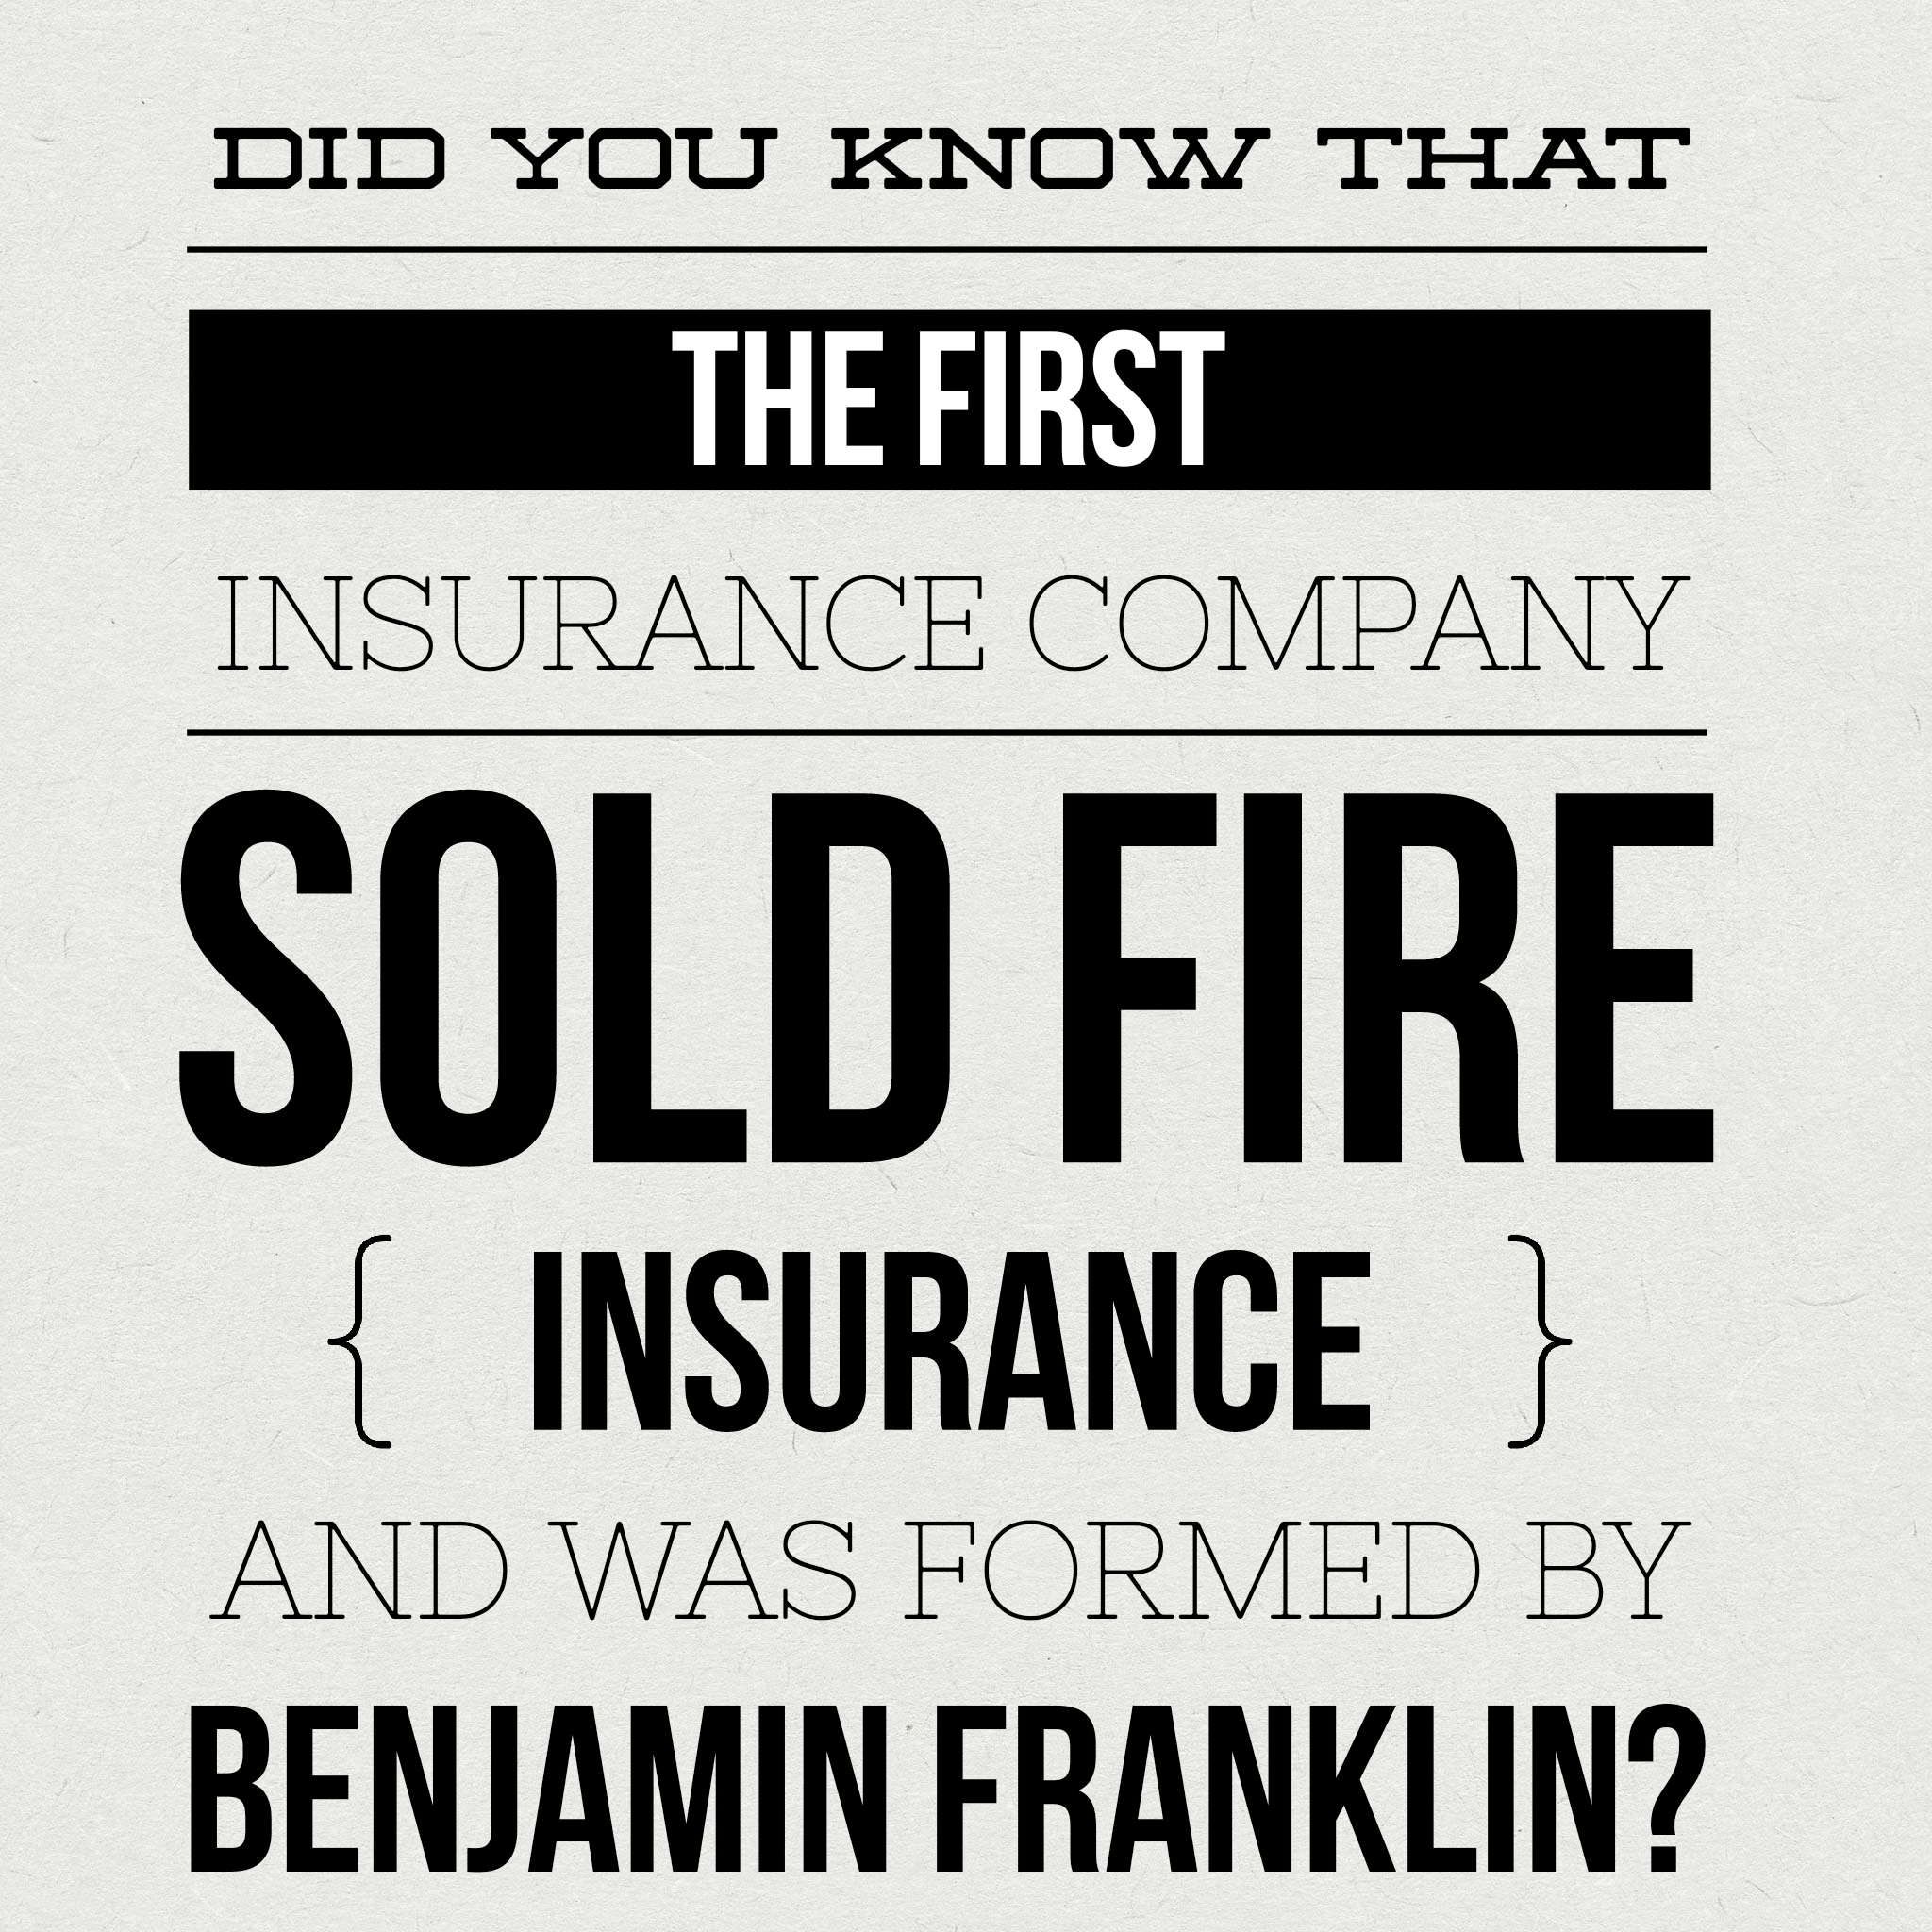 Did You Know That The First Insurance Company In The United States